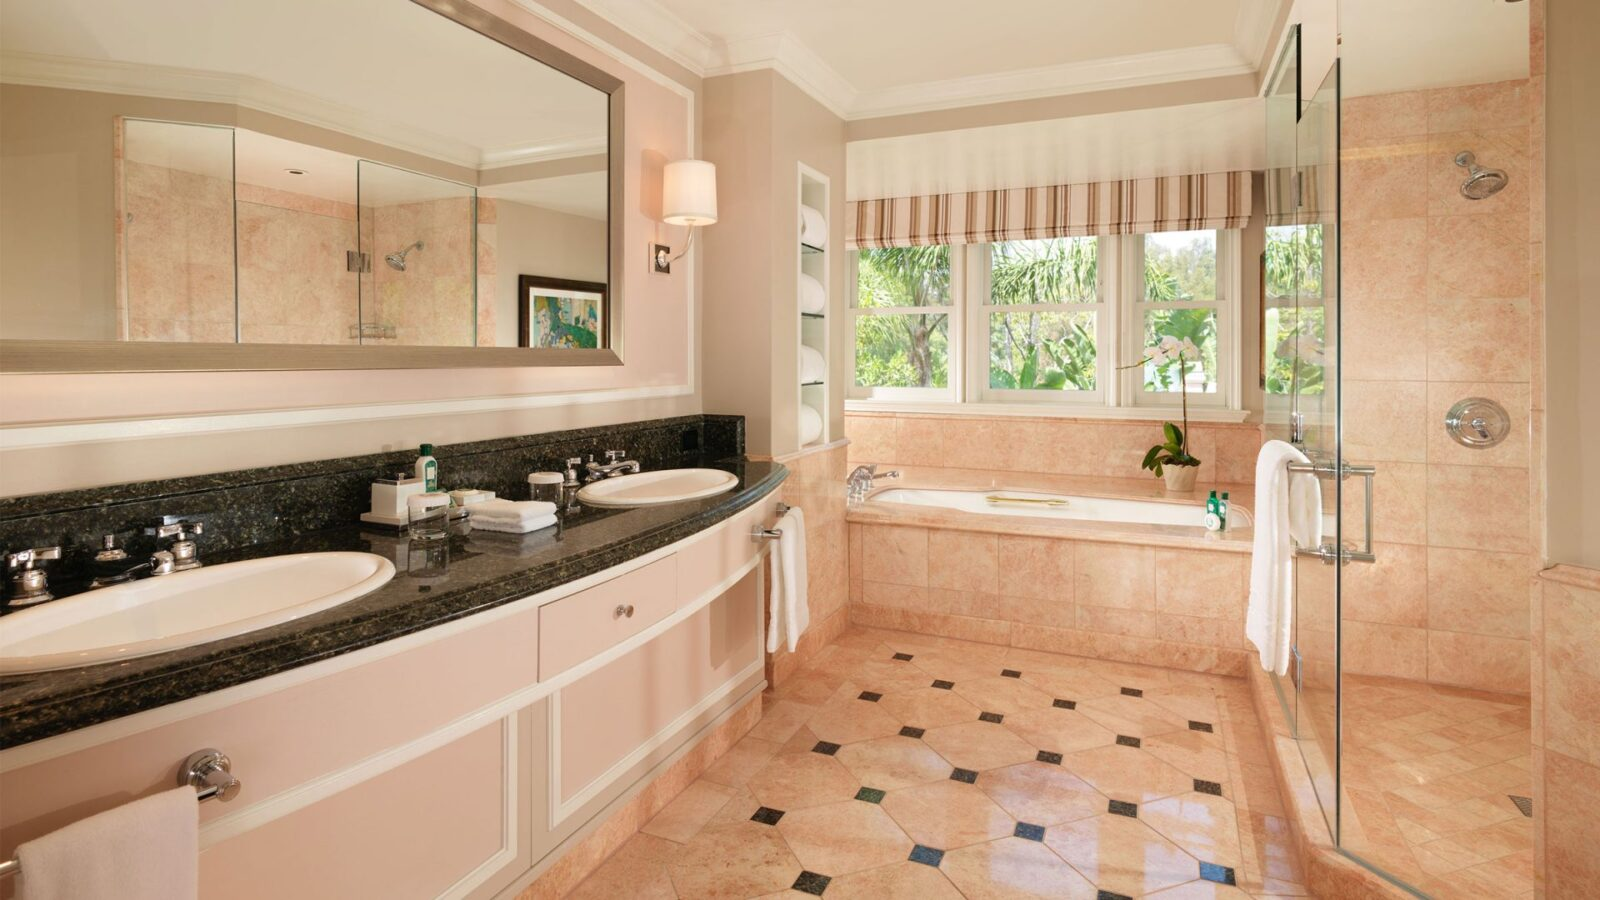 Bathrooms of lavish luxury